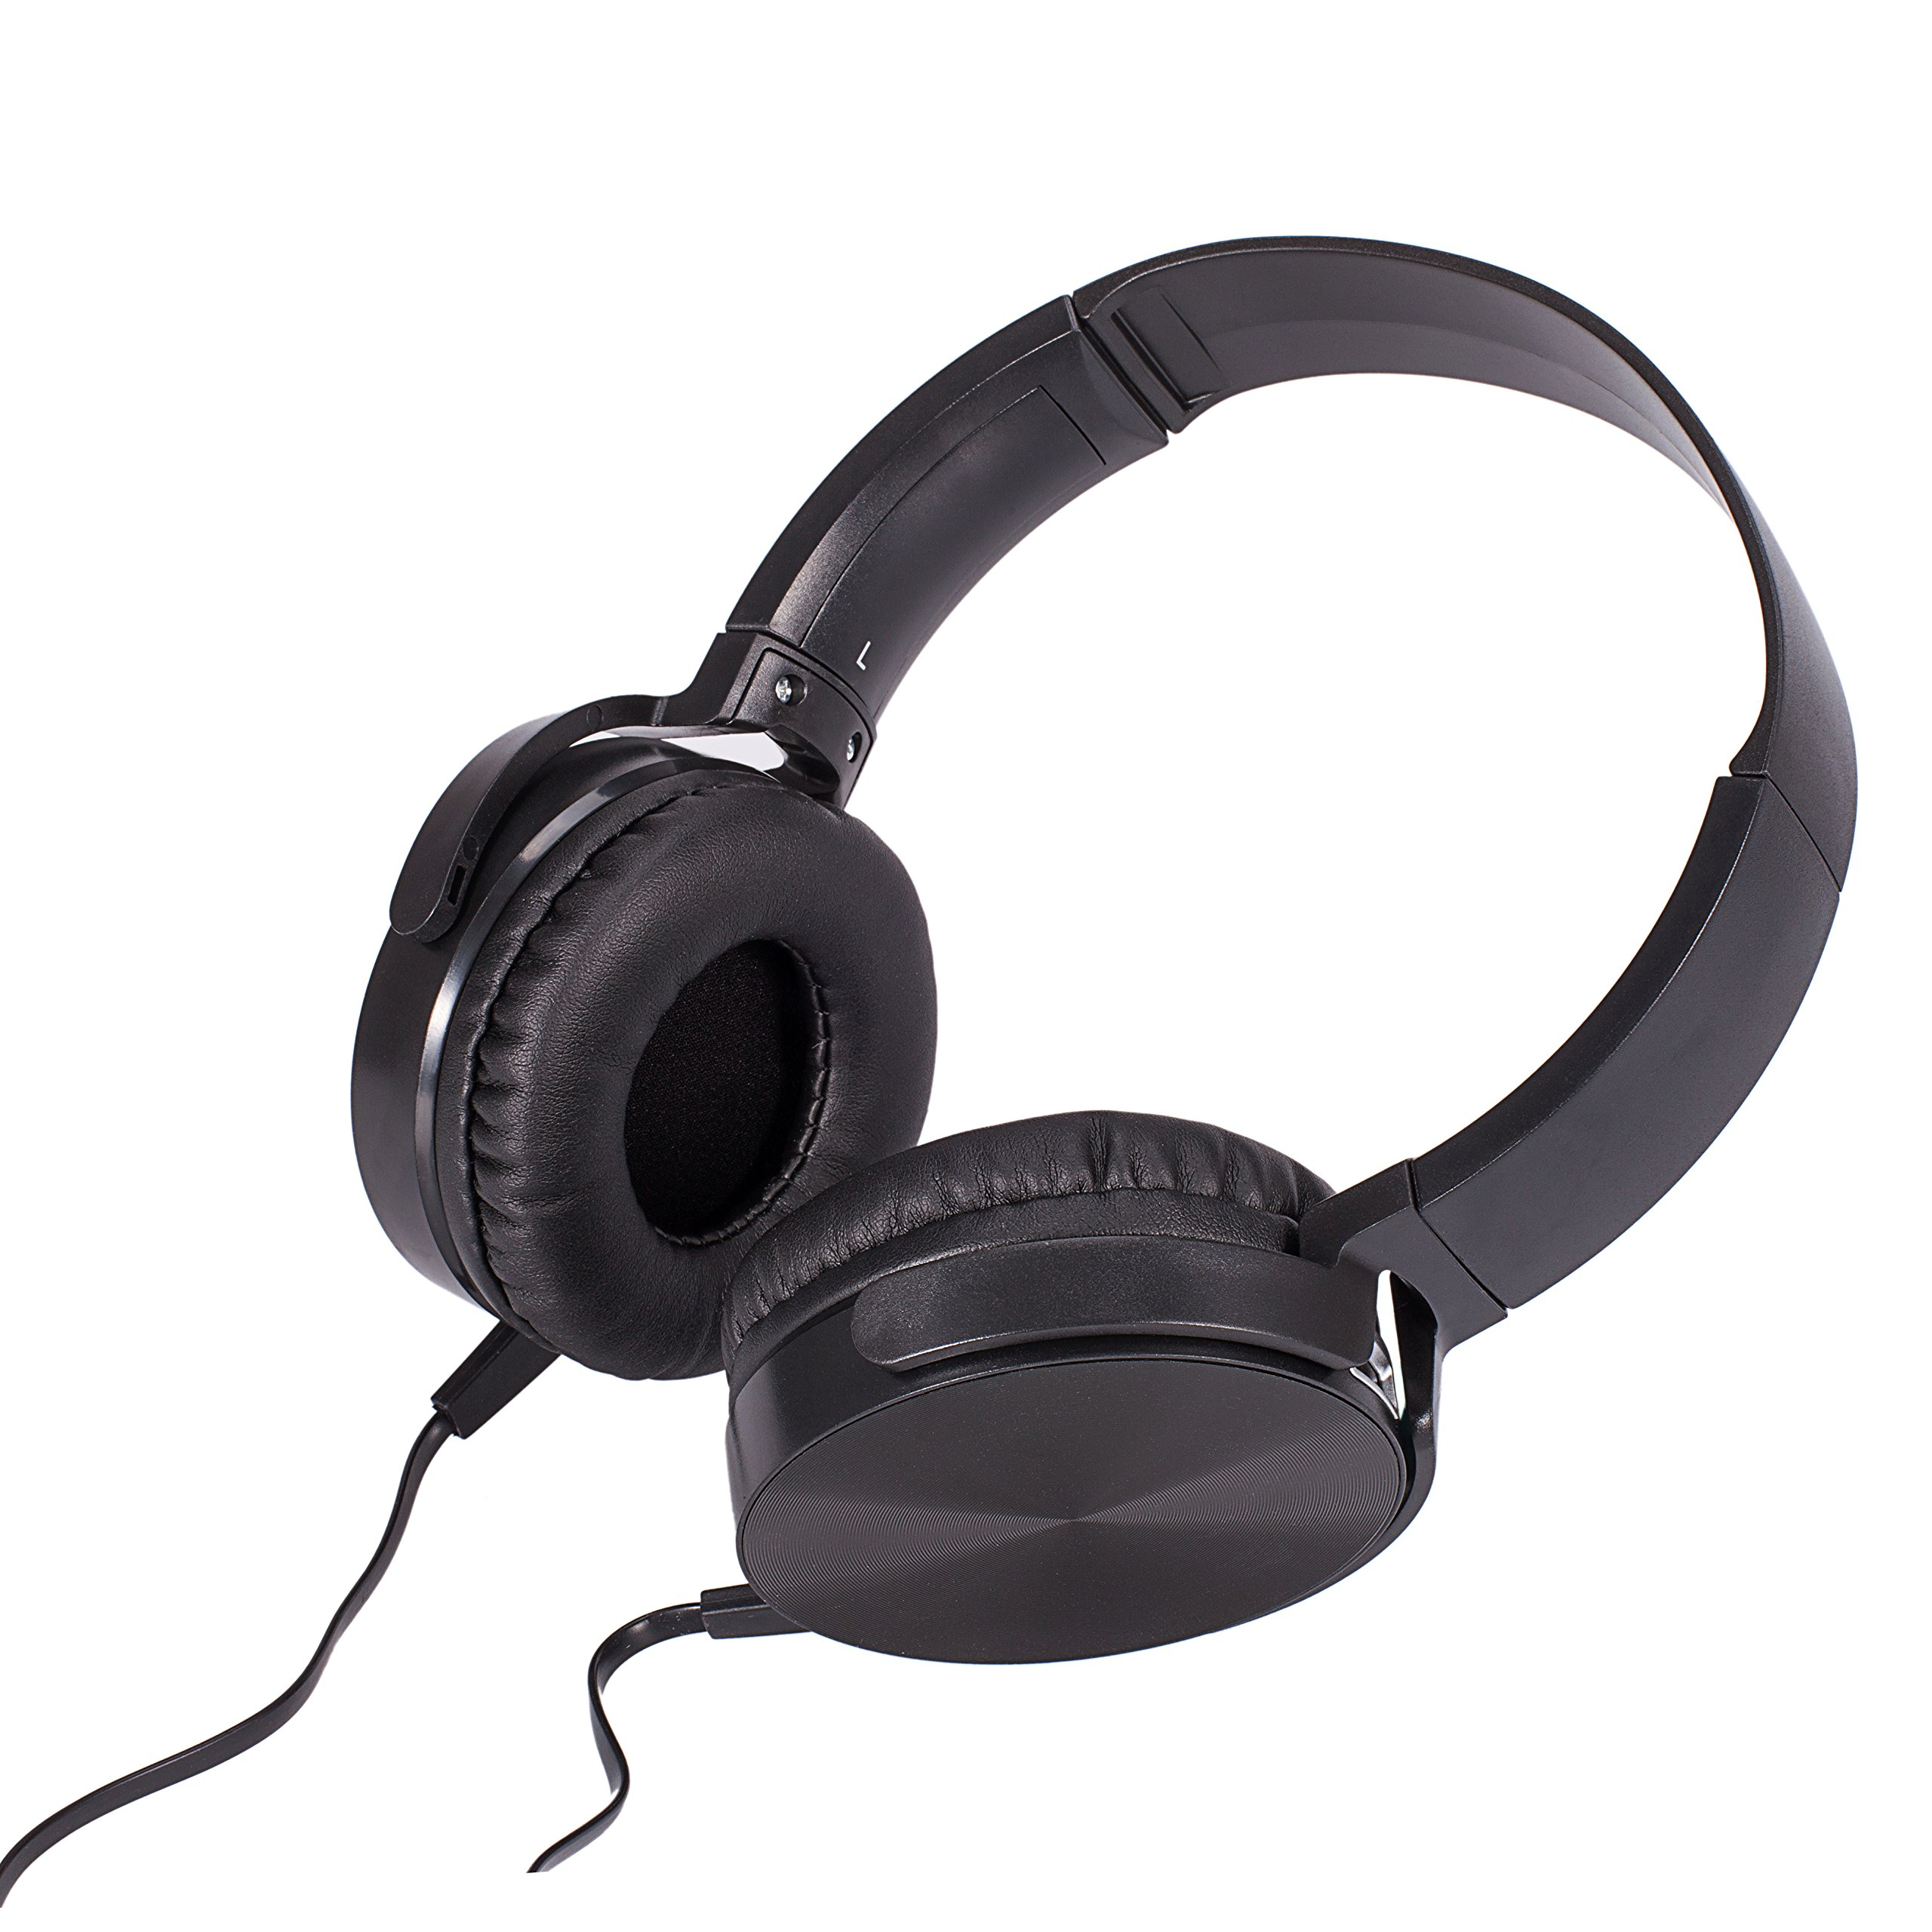 Wired Headphones Over Ear,Mclife Wired Headphones Earbuds,Foldable Headsets with Built-in Mic for PC,Computer,Mac,iPod,iPhone,Android Smartphone,etc